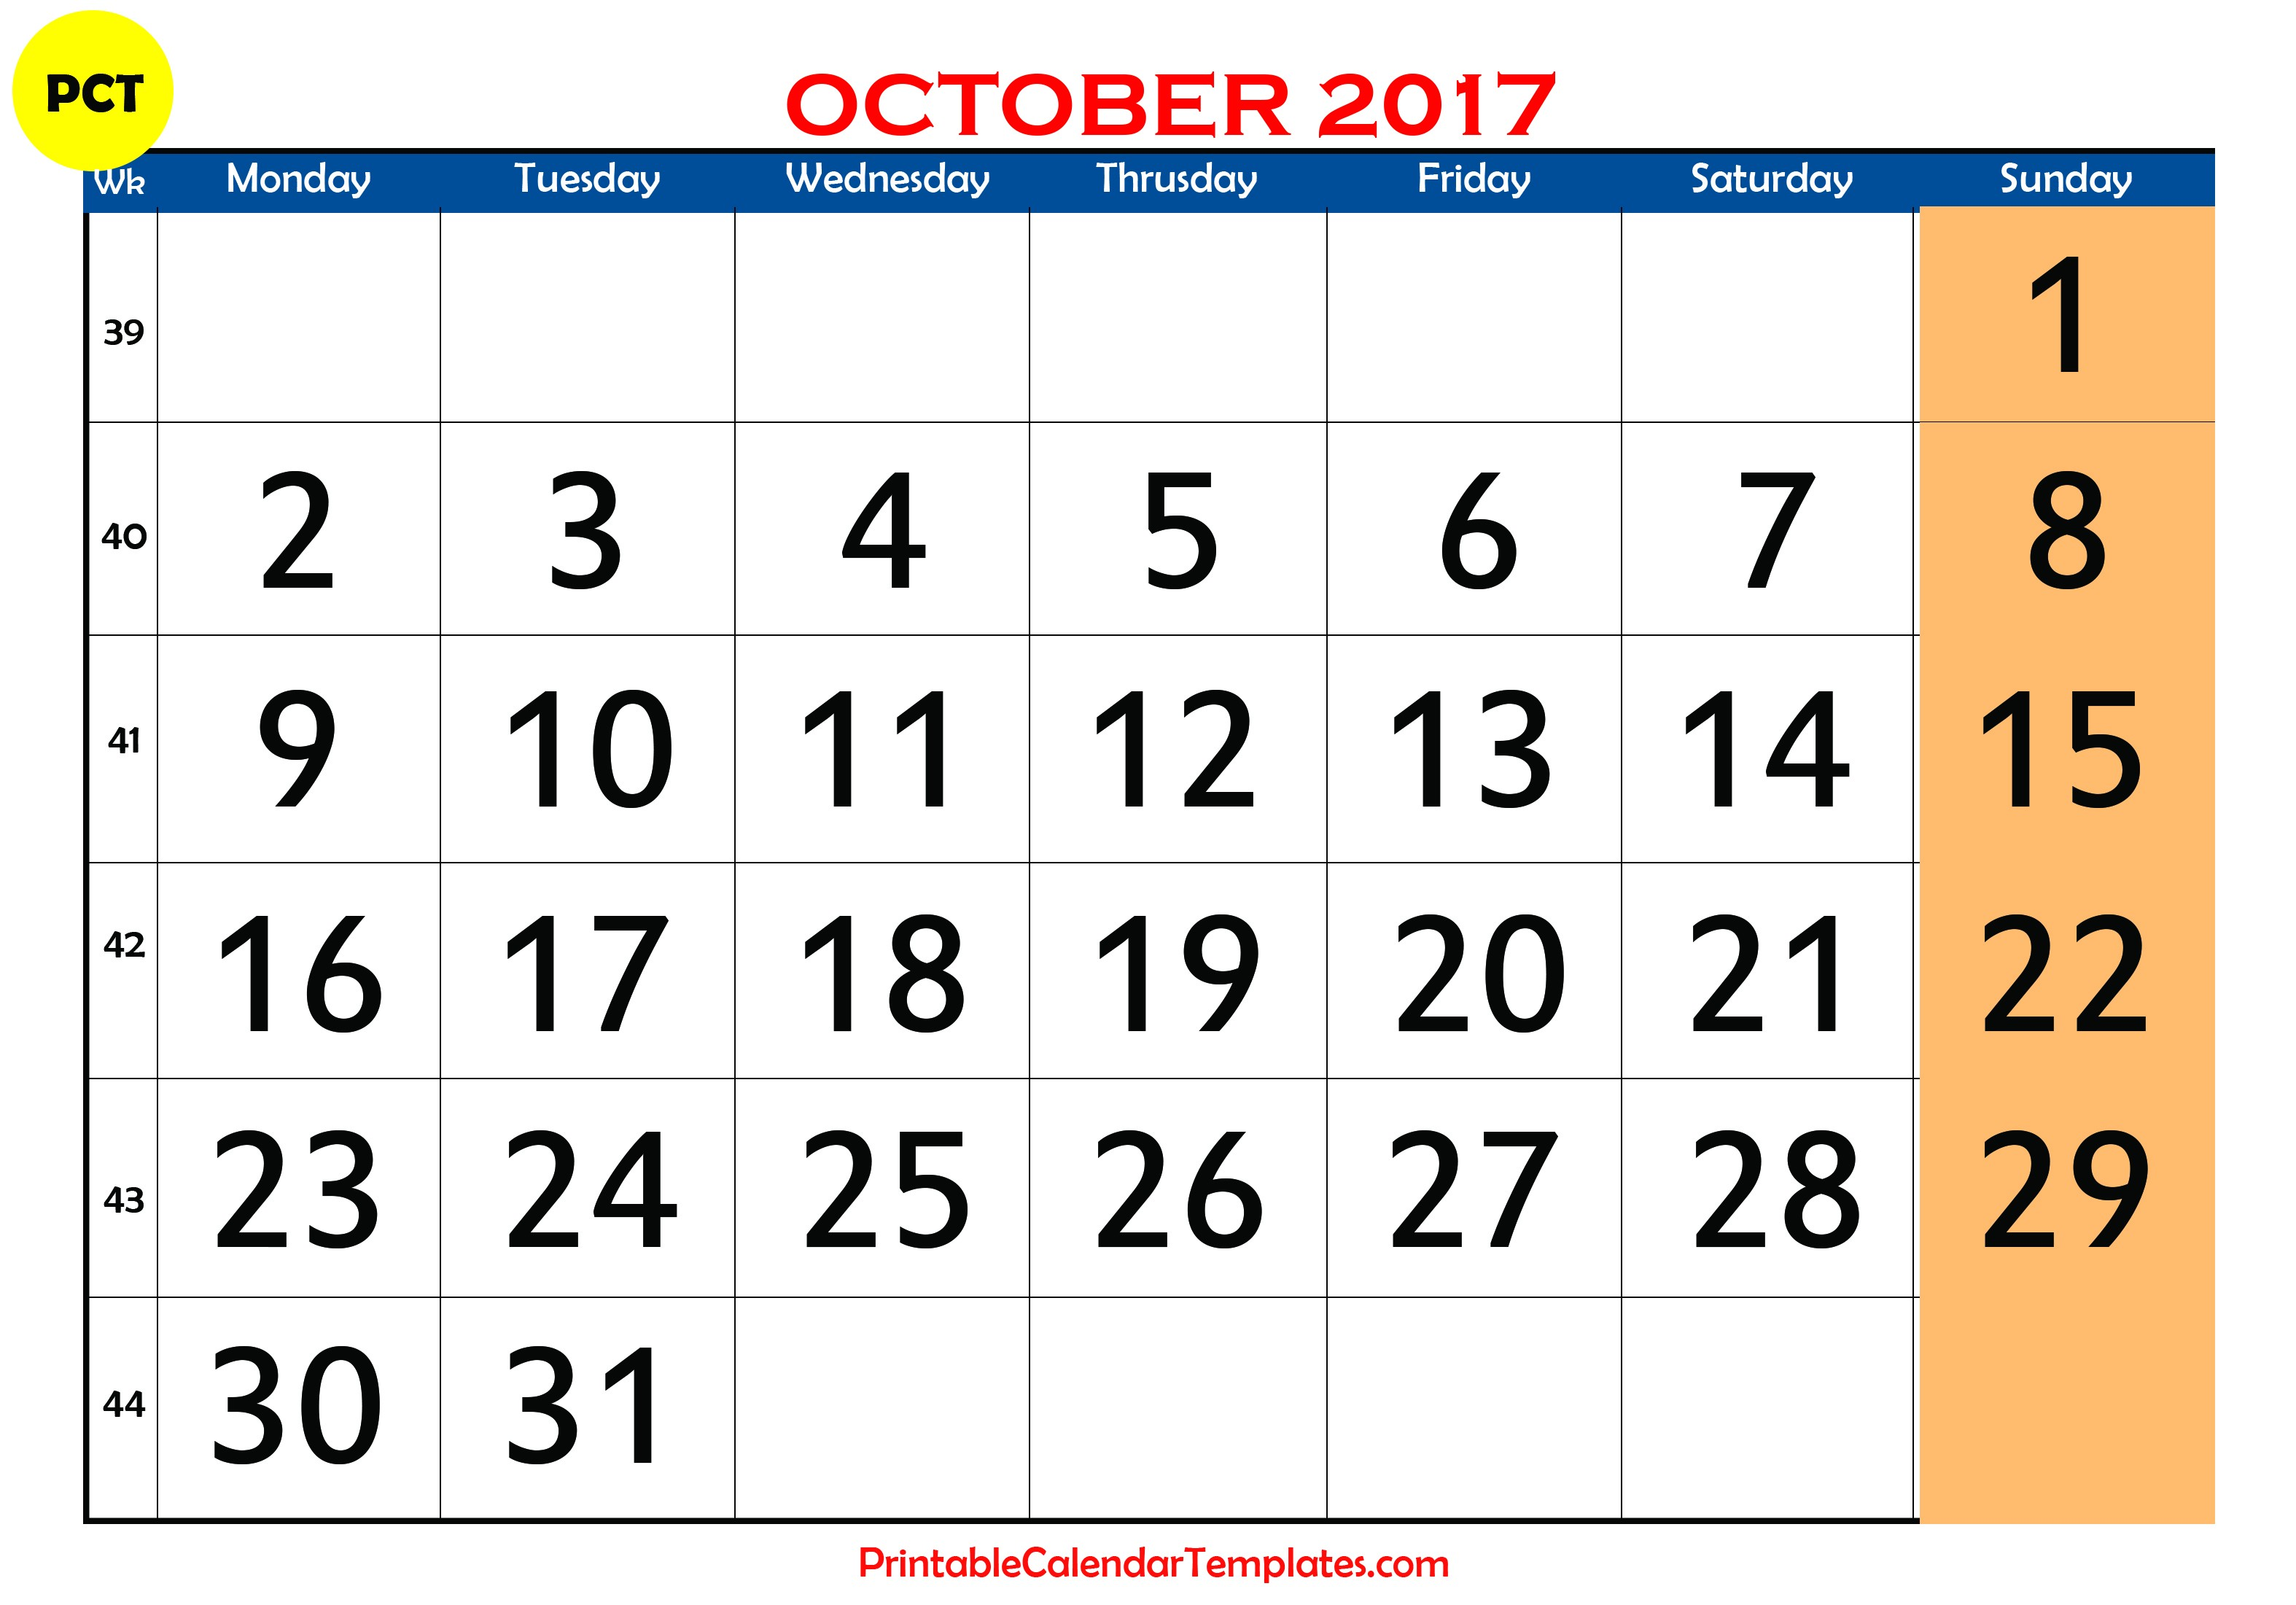 October 2017 Calendar Template Printable